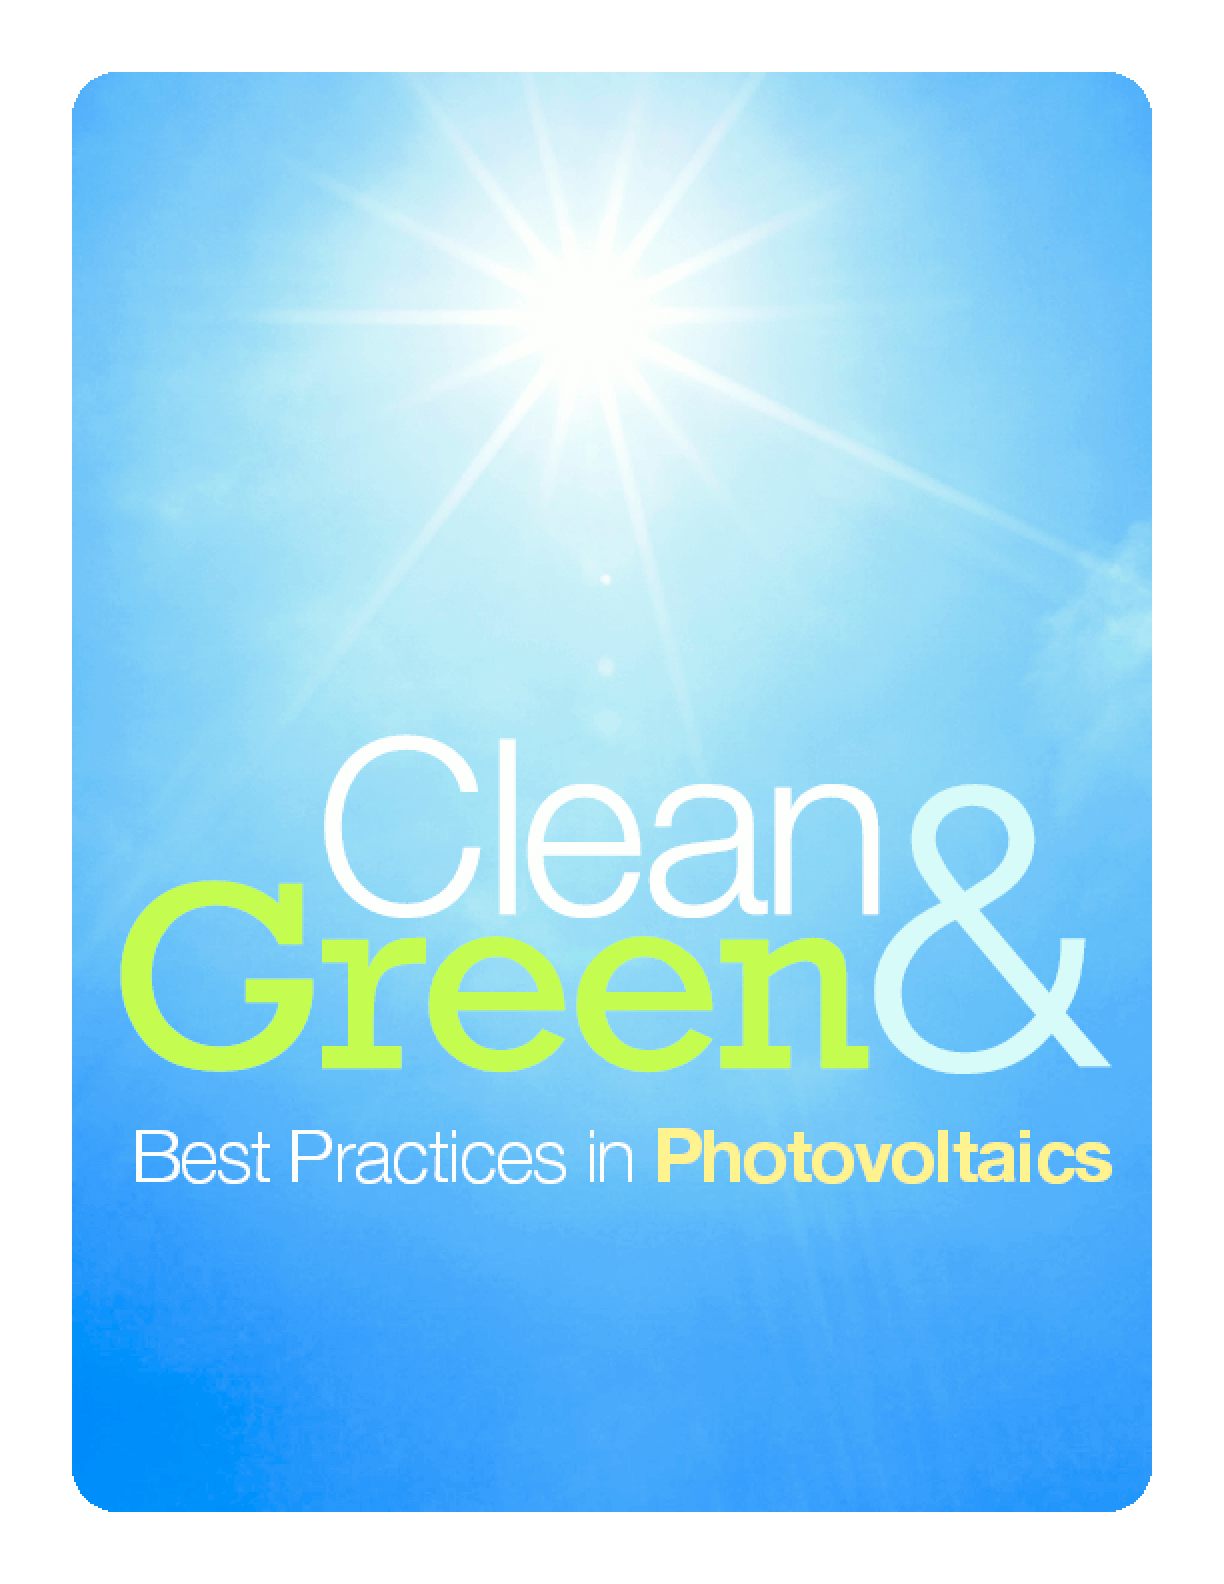 Clean & Green: Best Practices in Photovoltaics